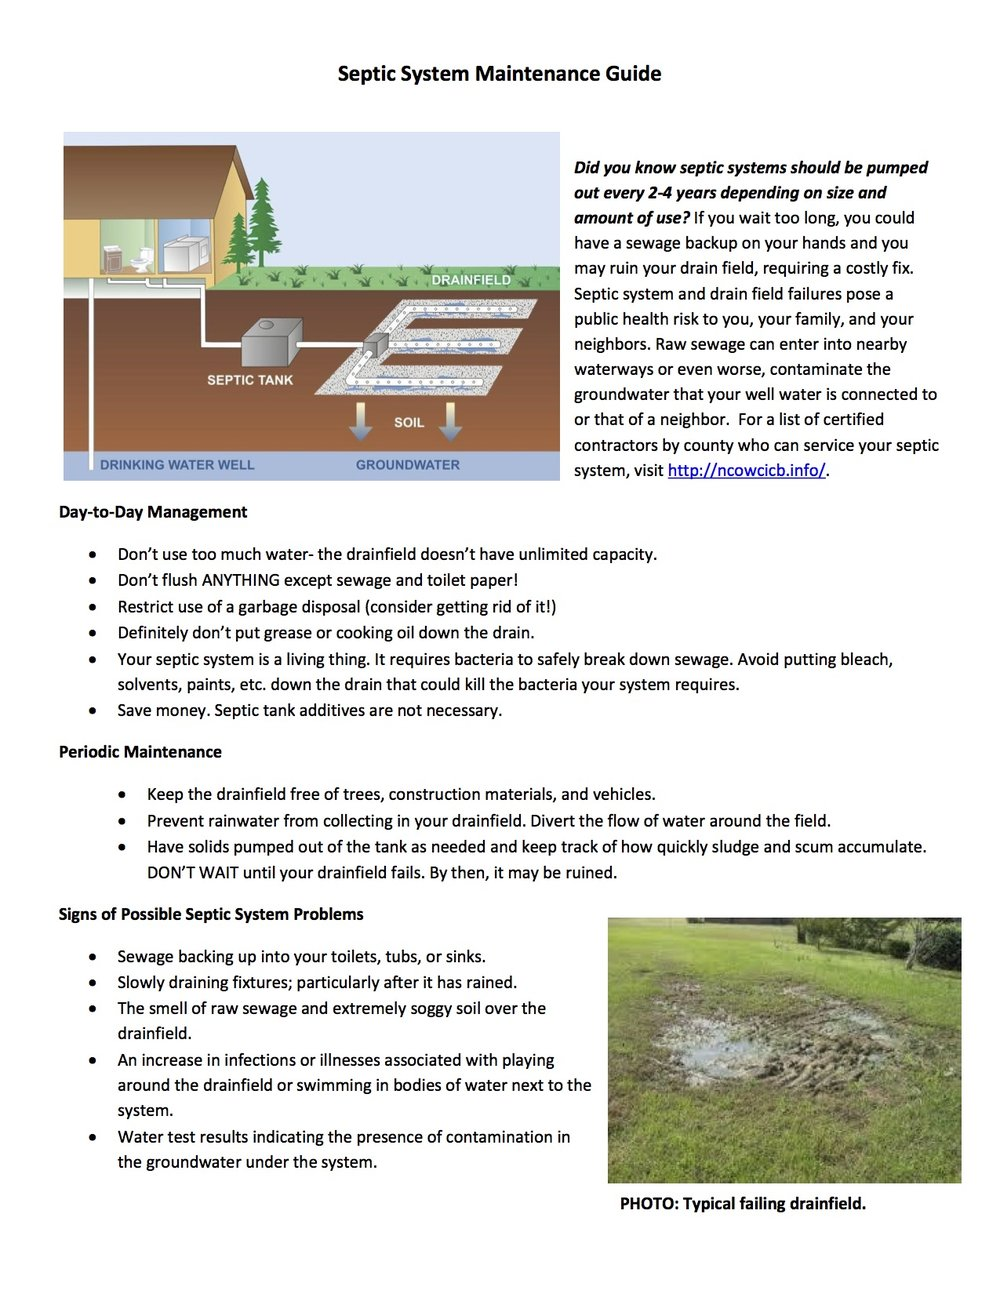 Septic System Maintenance Handout-319 Mailers.jpg